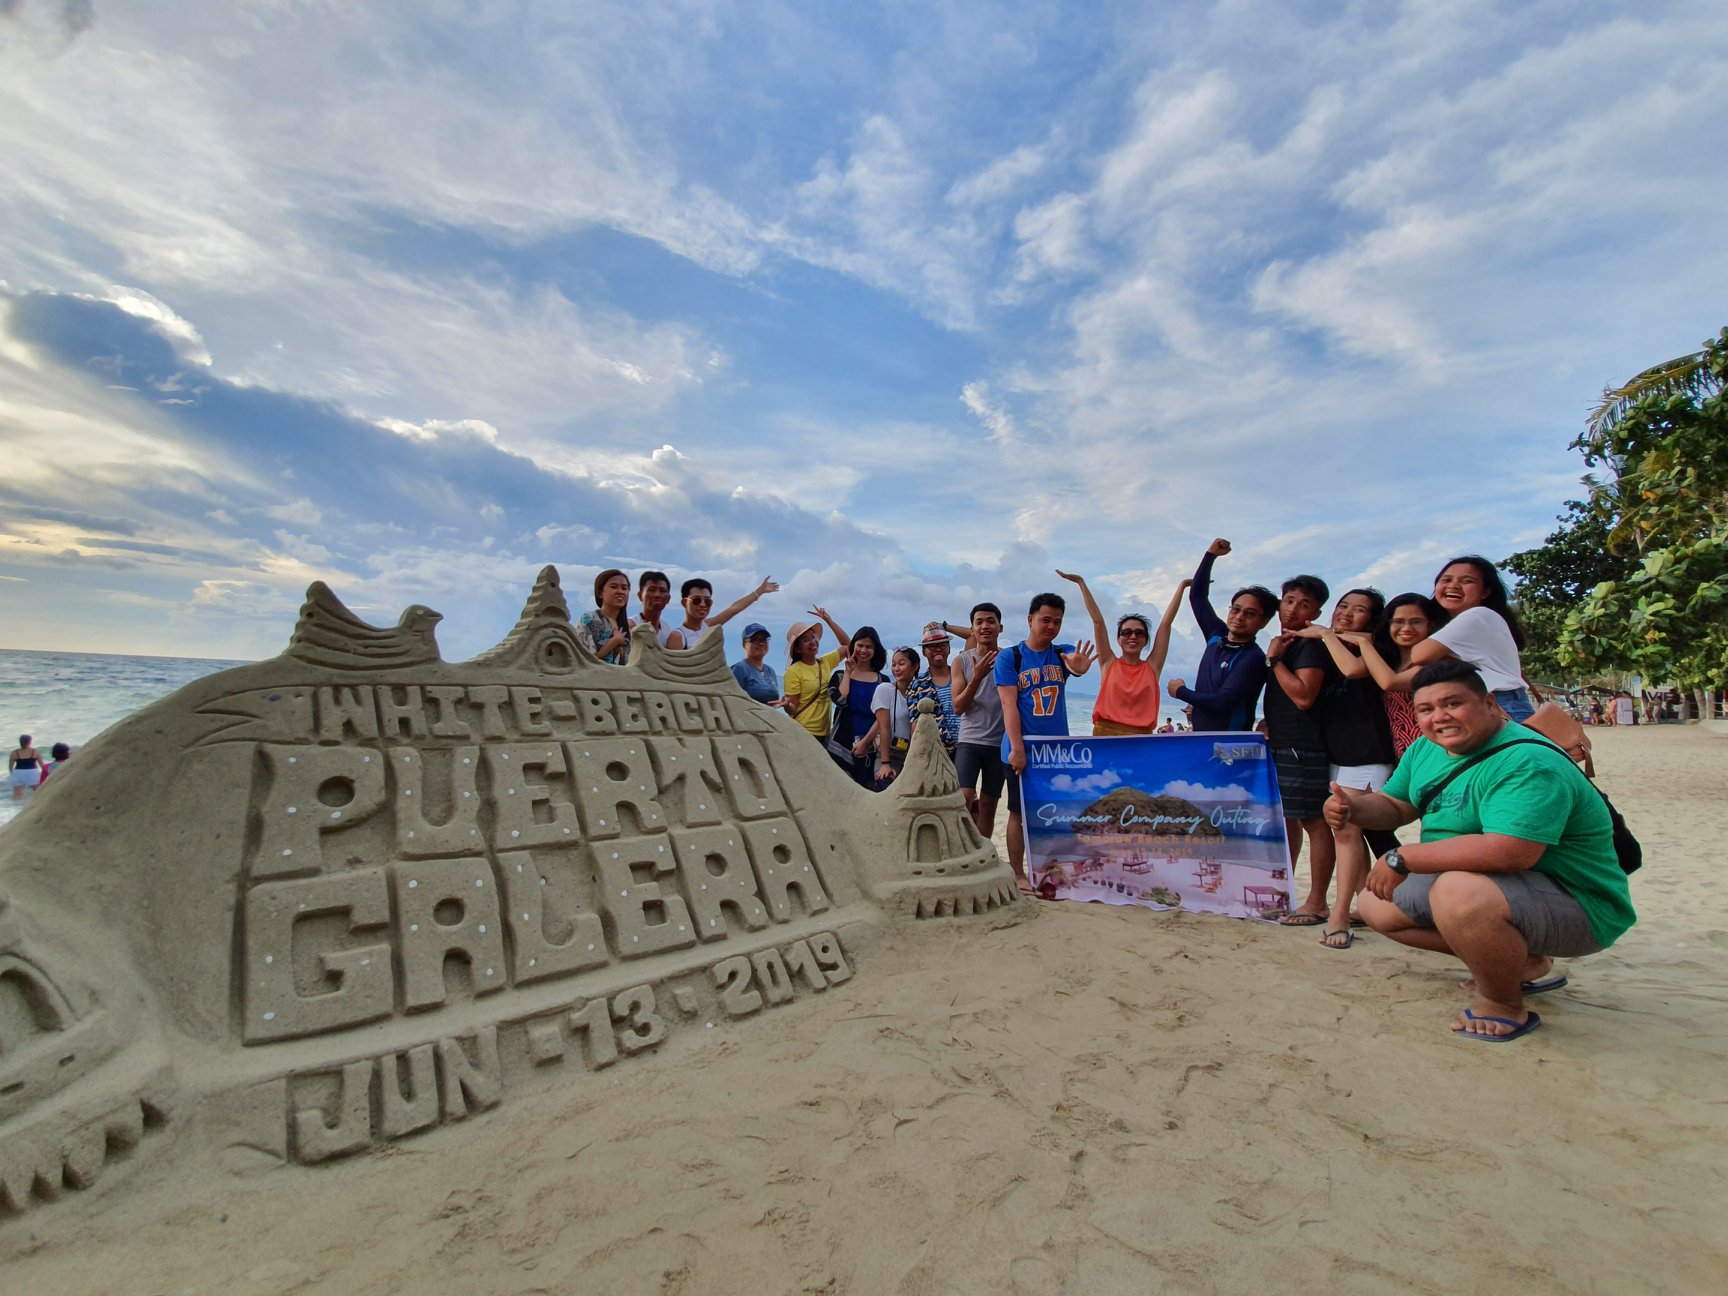 MM&Co. goes to Puerto Galera